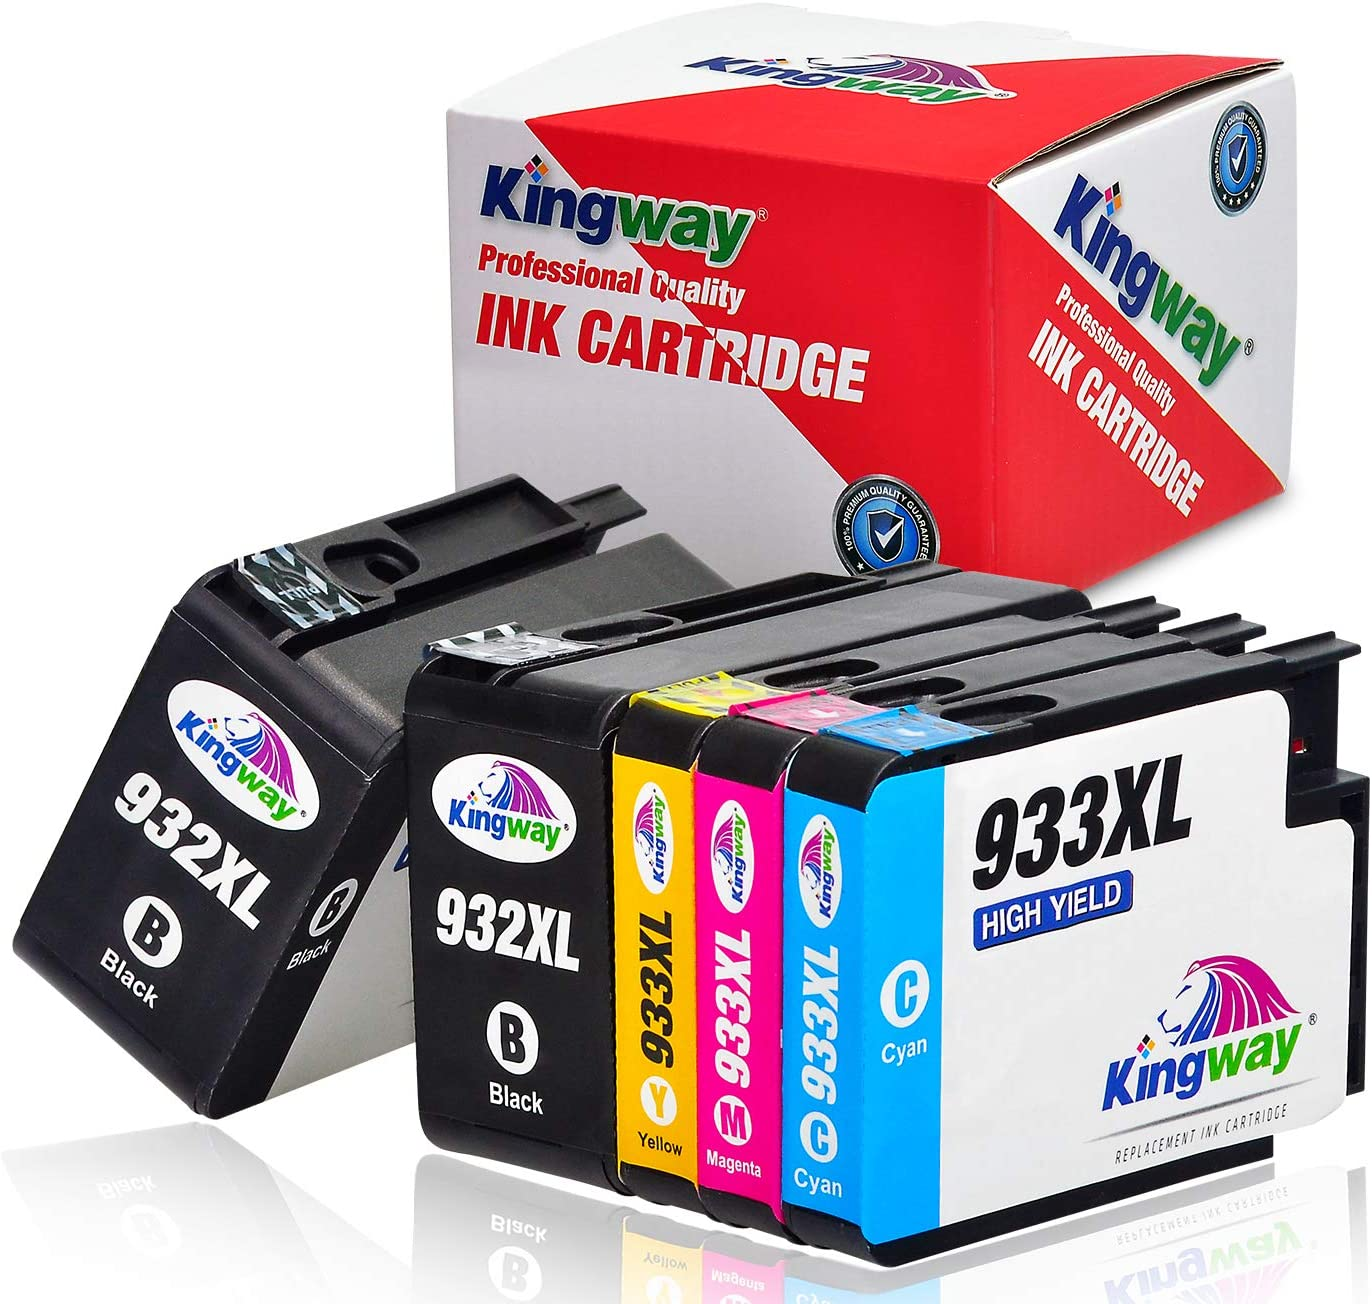 Kingway Compatible Ink Cartridge Replacement for HP 932XL 933XL Work with HP Officejet 6700 6600 7612 7610 6100 7110 7510 Printer 5 Pack(2 Black,1 Cyan,1 Magenta,1 Yellow)